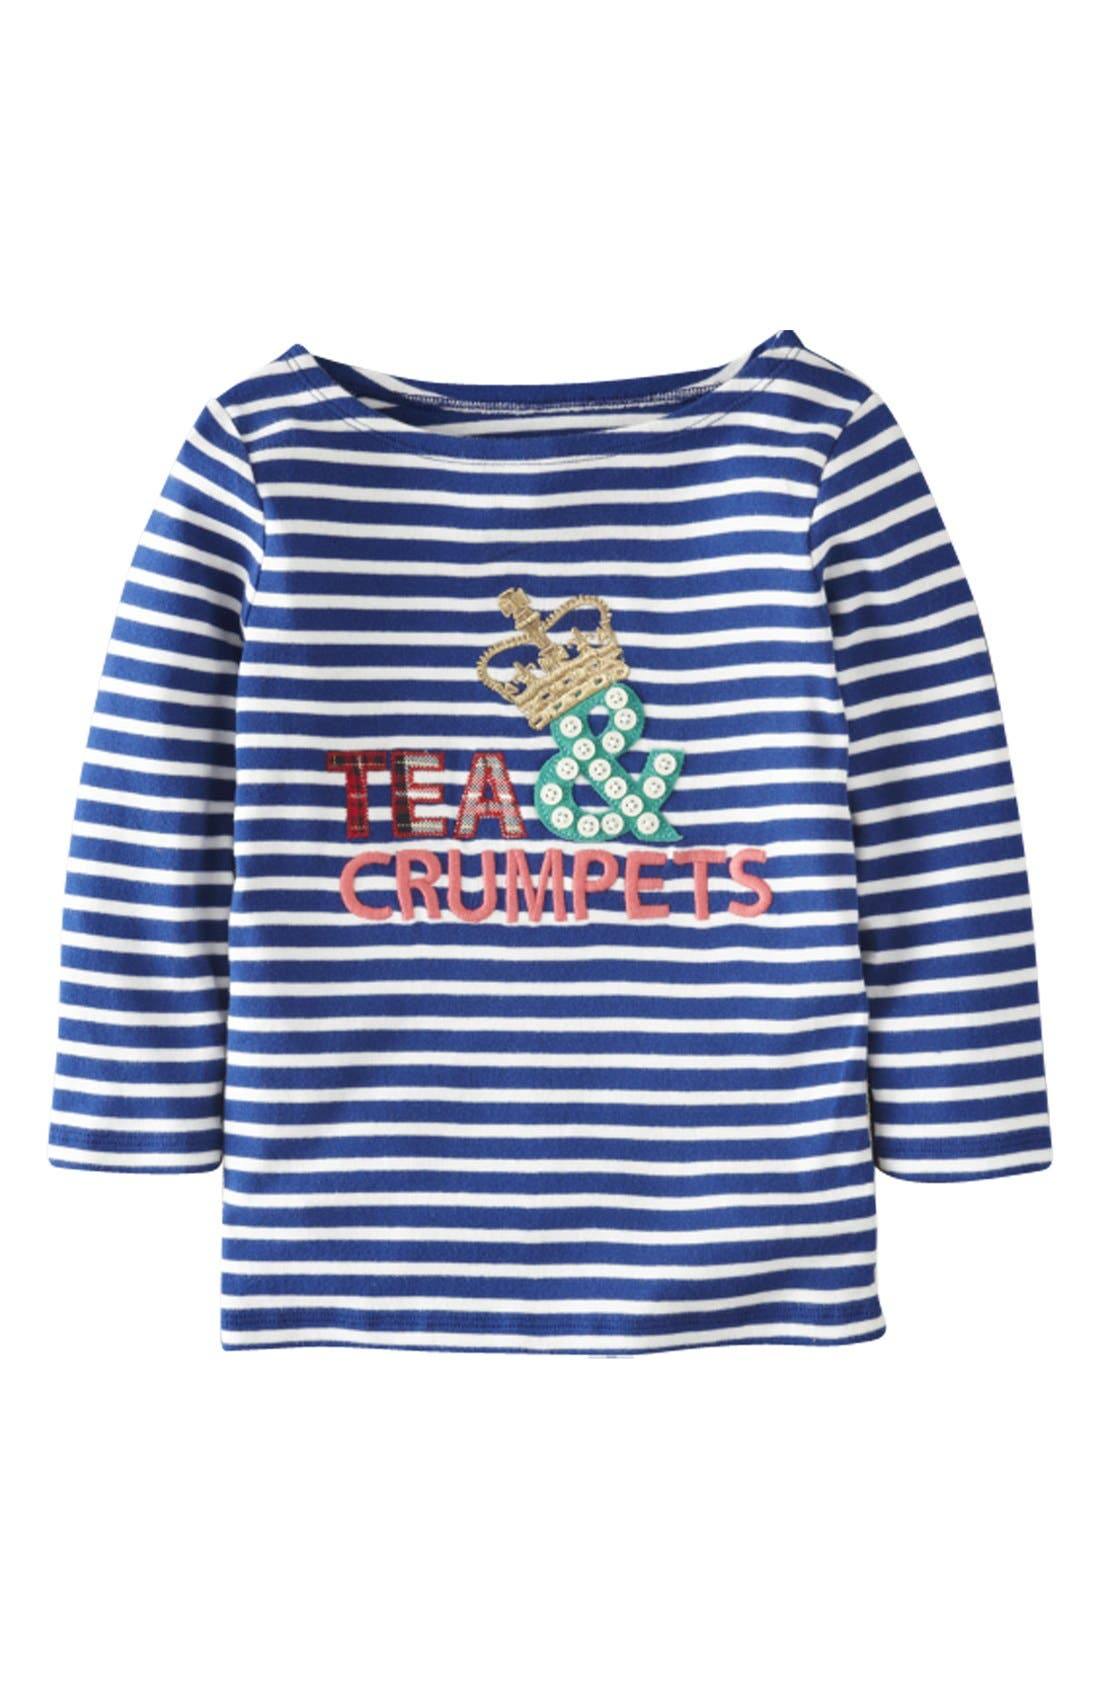 Main Image - Mini Boden 'Stripy' Appliqué' Boatneck Tee (Toddler Girls)